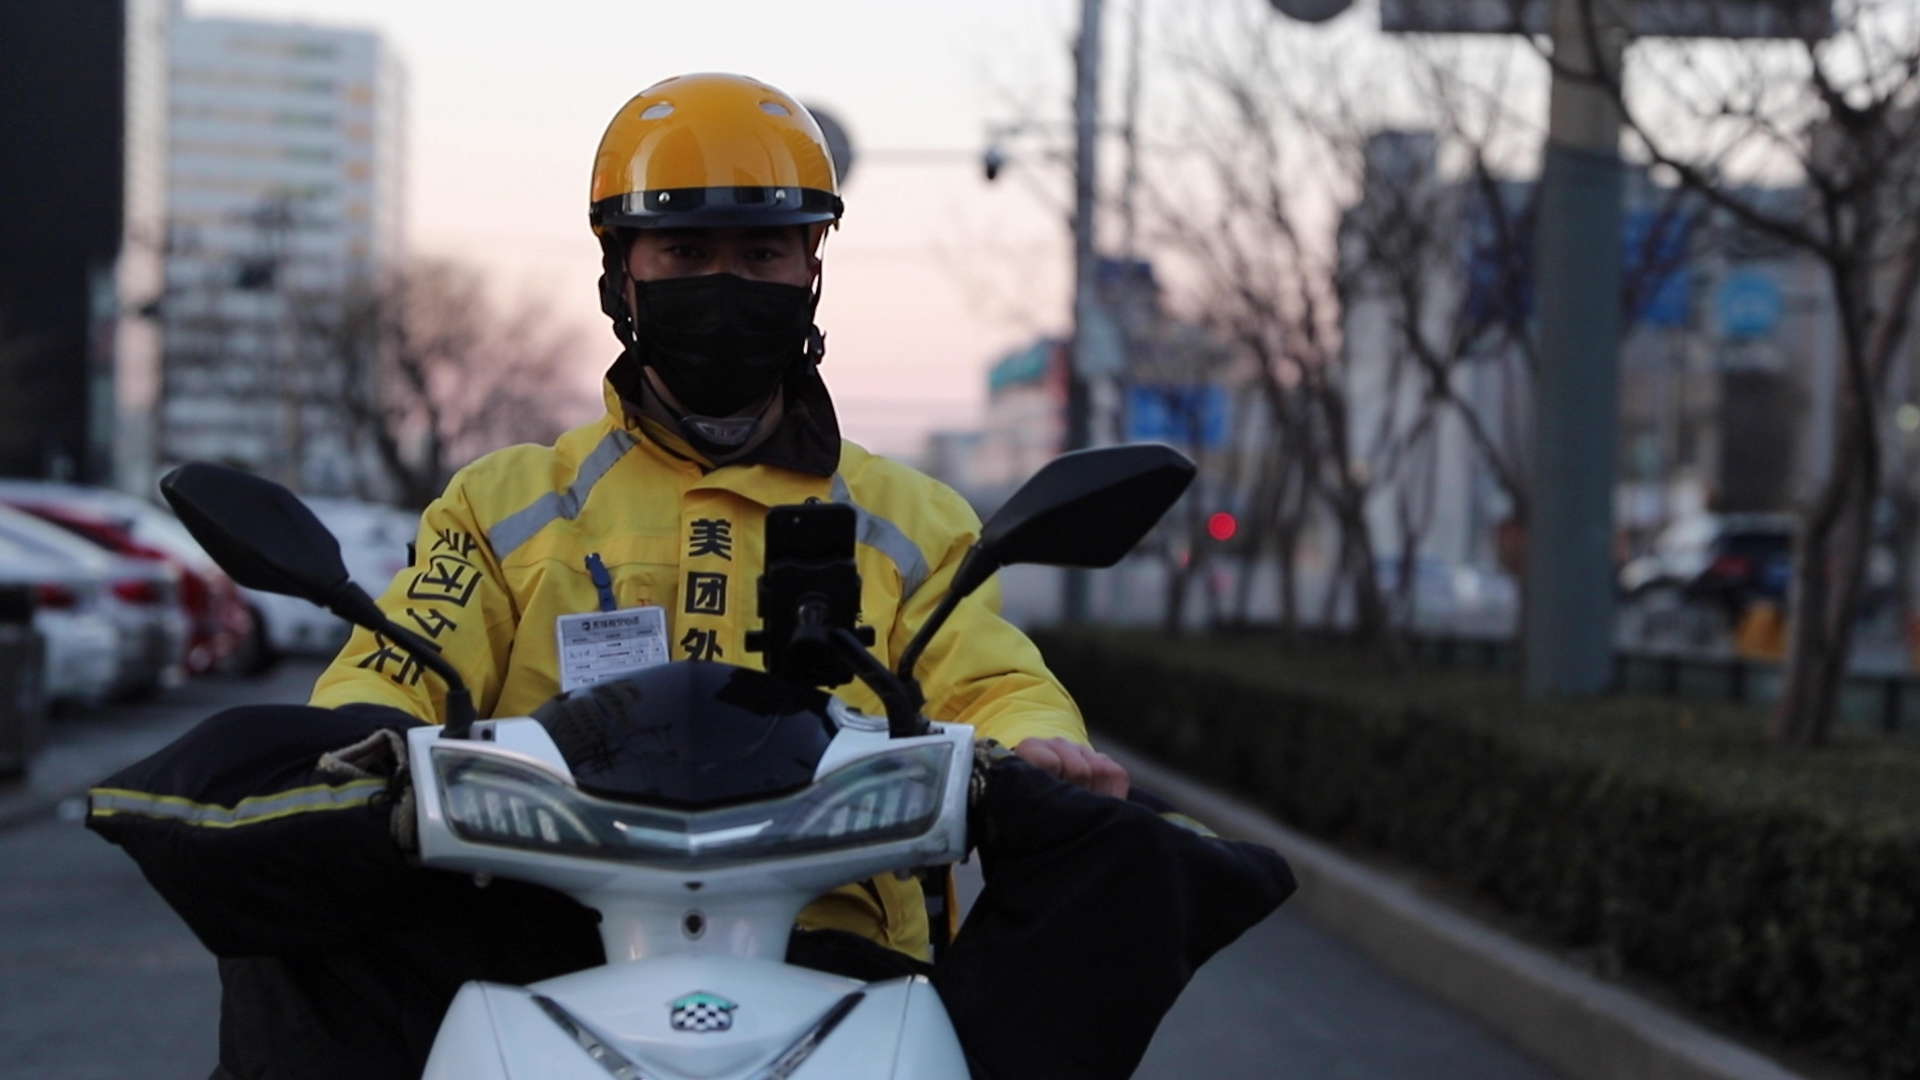 China's estimated 3 million motorcycle delivery drivers are shouldering the burden of keeping the population from going hungry